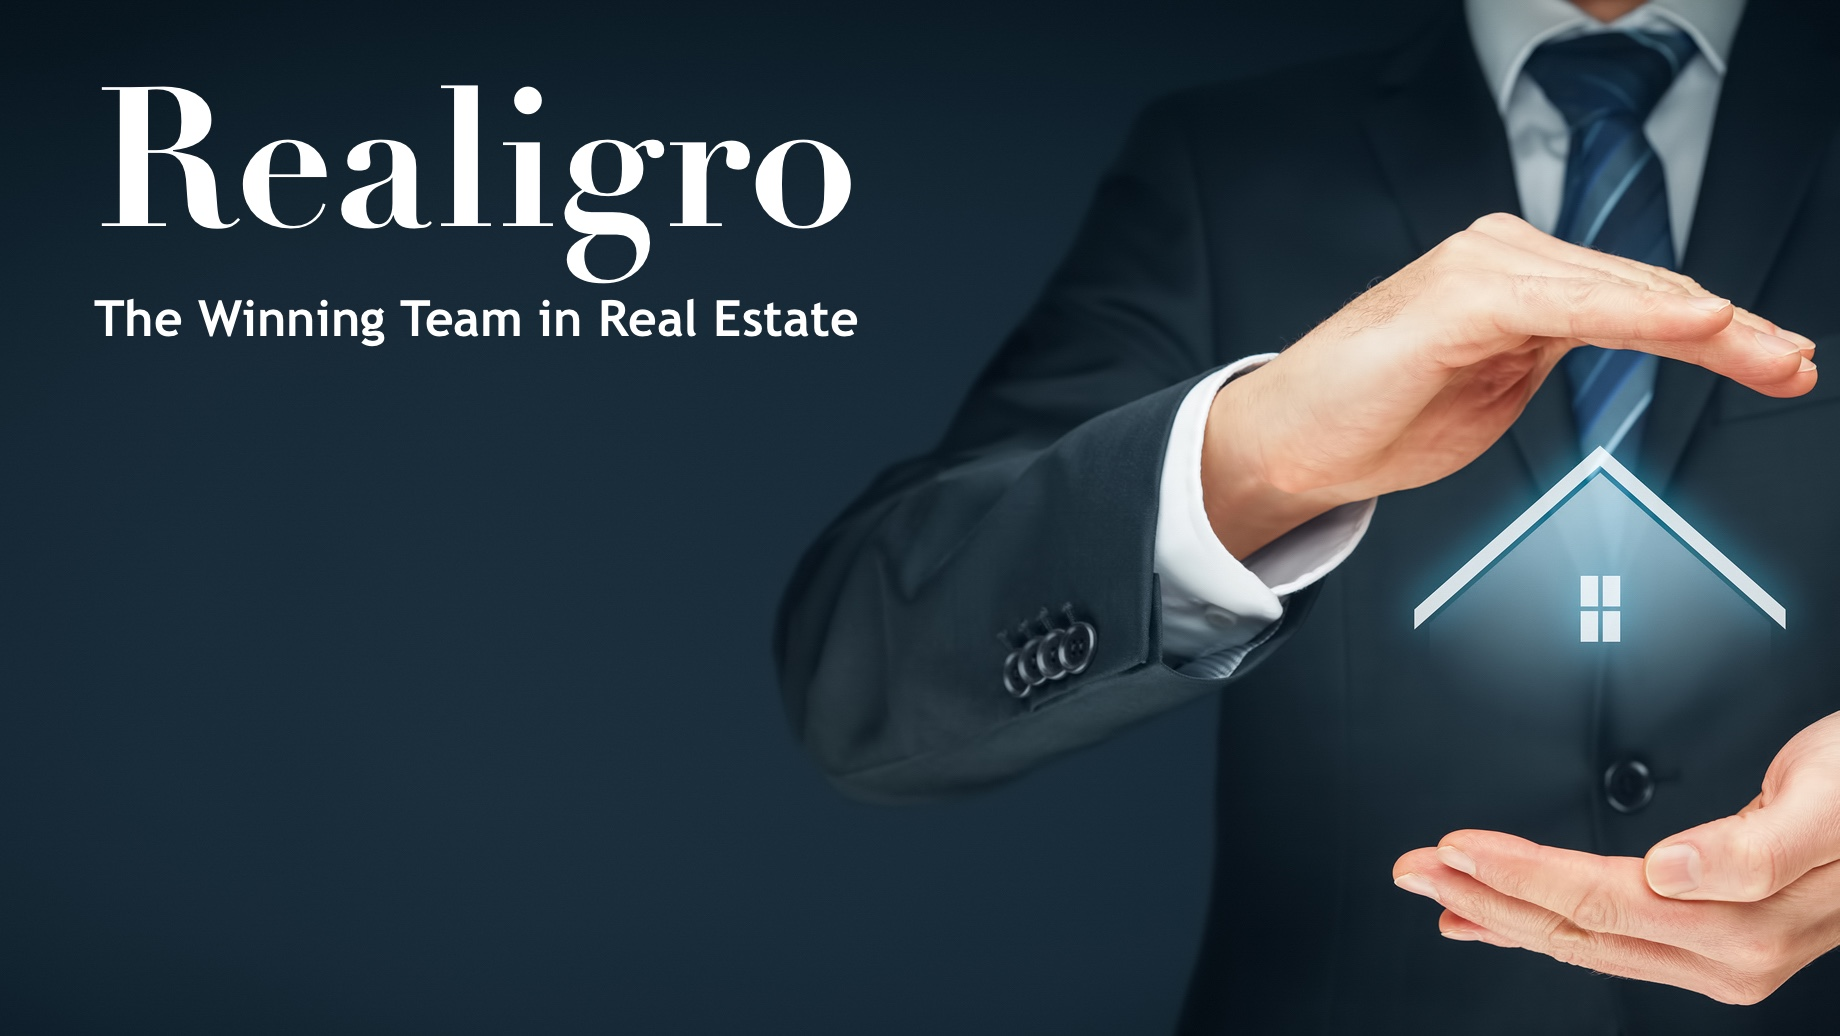 Realigro - The Winning Team in Real Estate